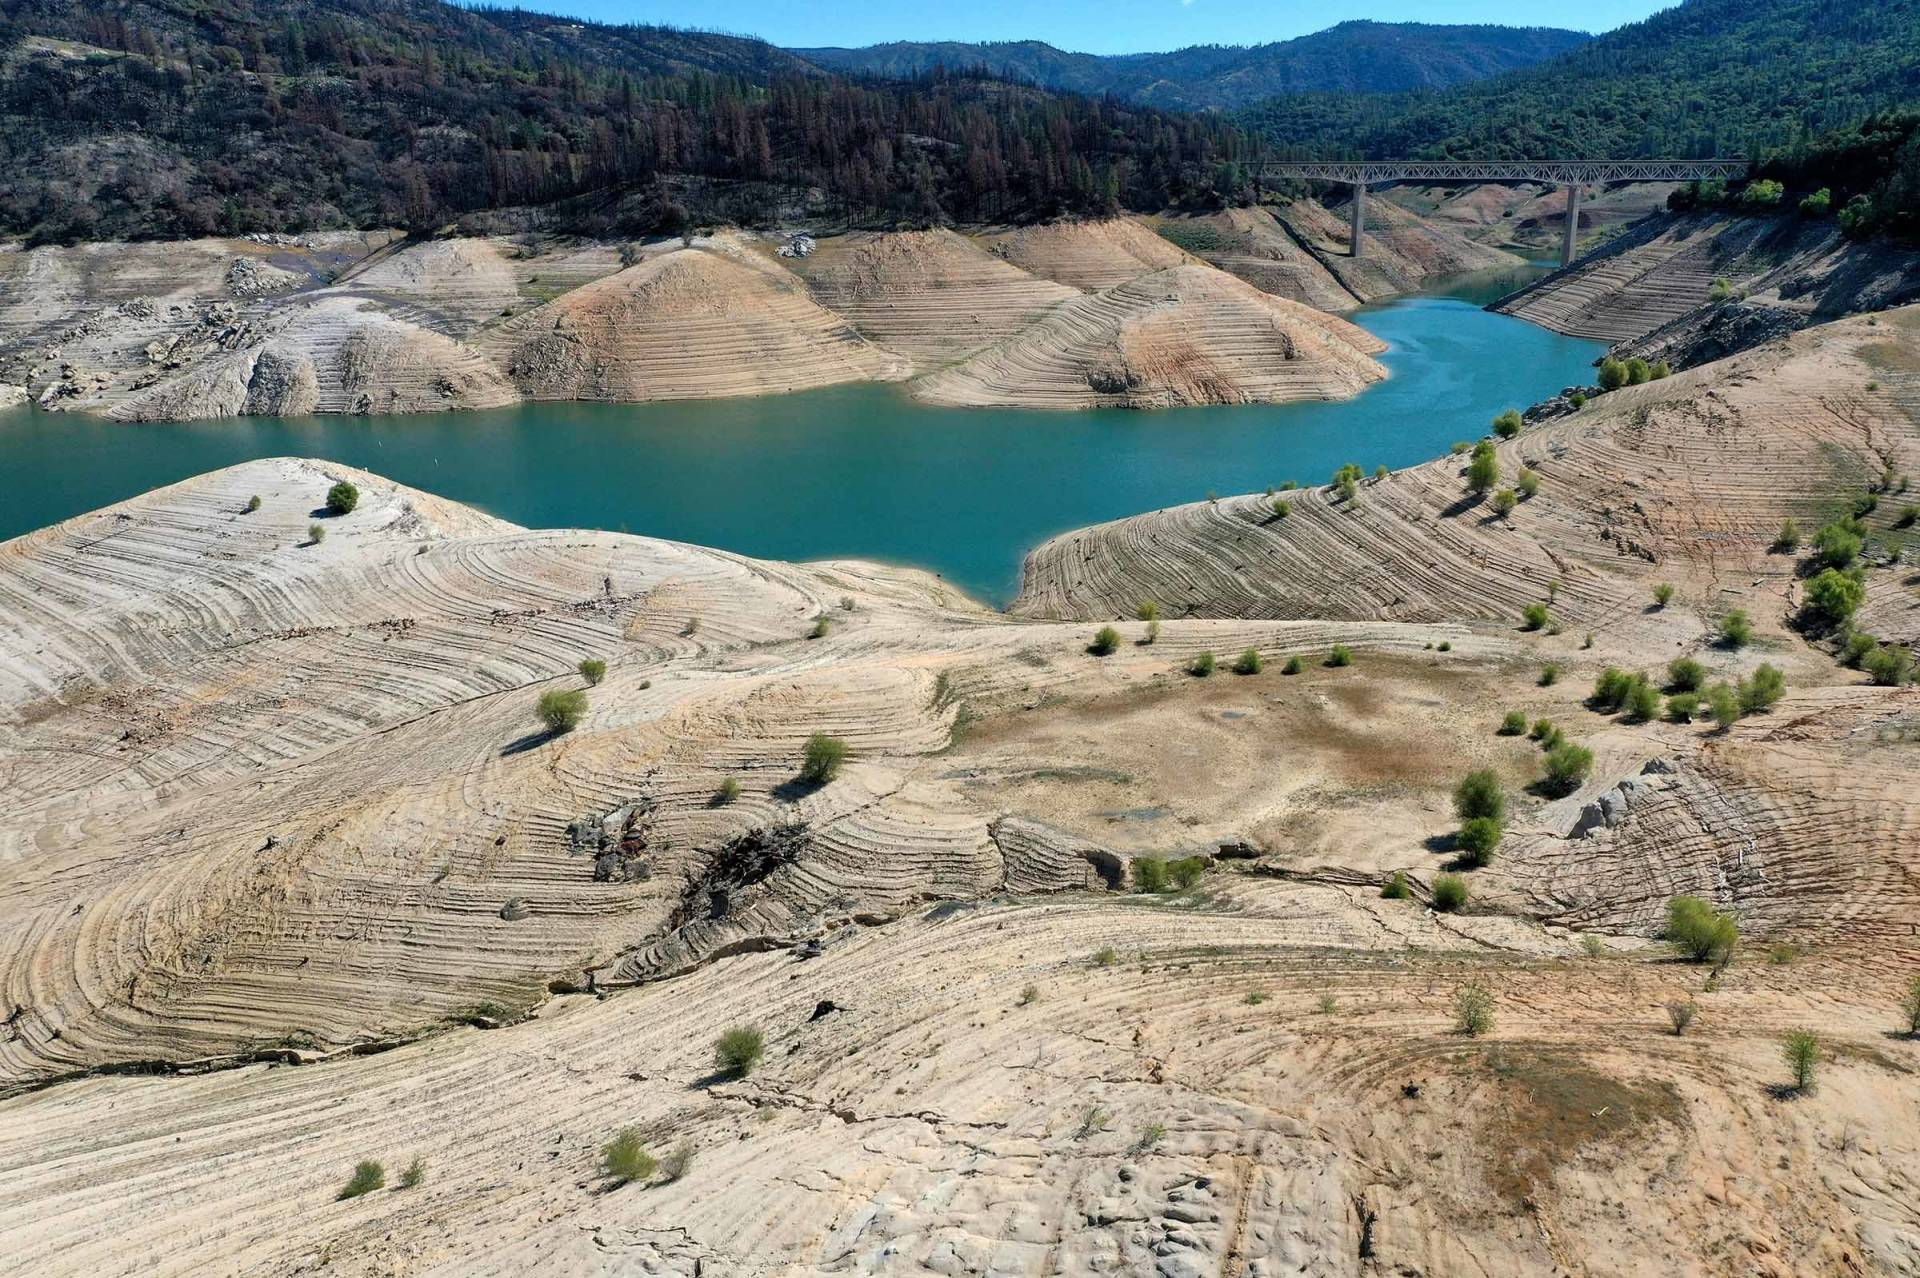 In an aerial view, low water levels are visible at Lake Oroville on April 27, 2021 in Oroville, California.